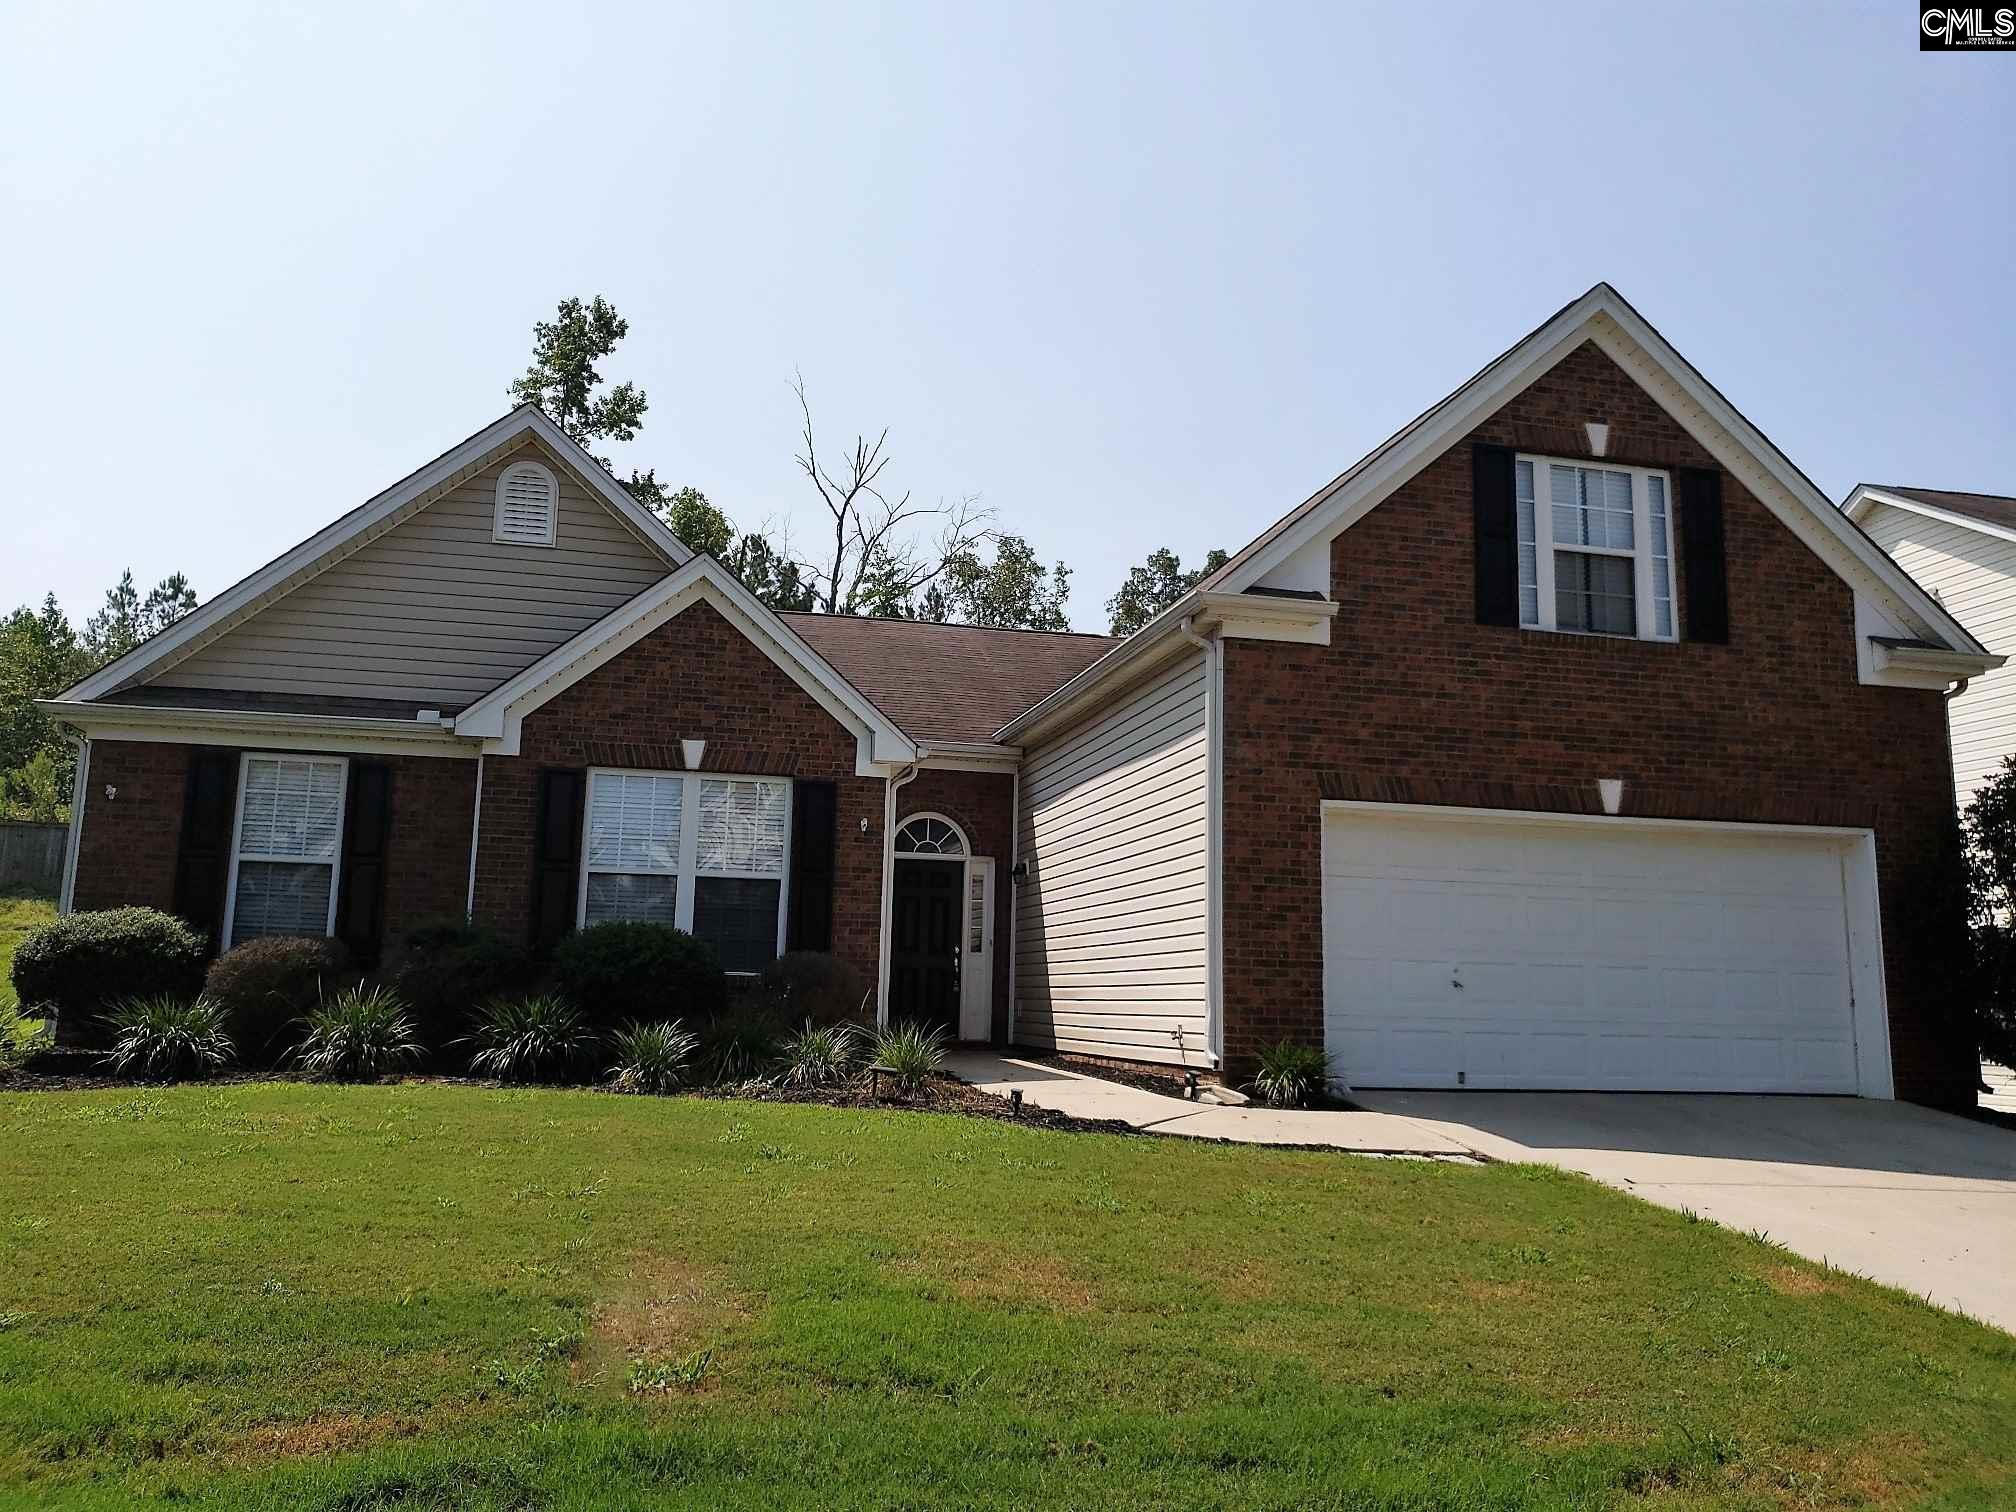 337 Buckthorne Lexington, SC 29072